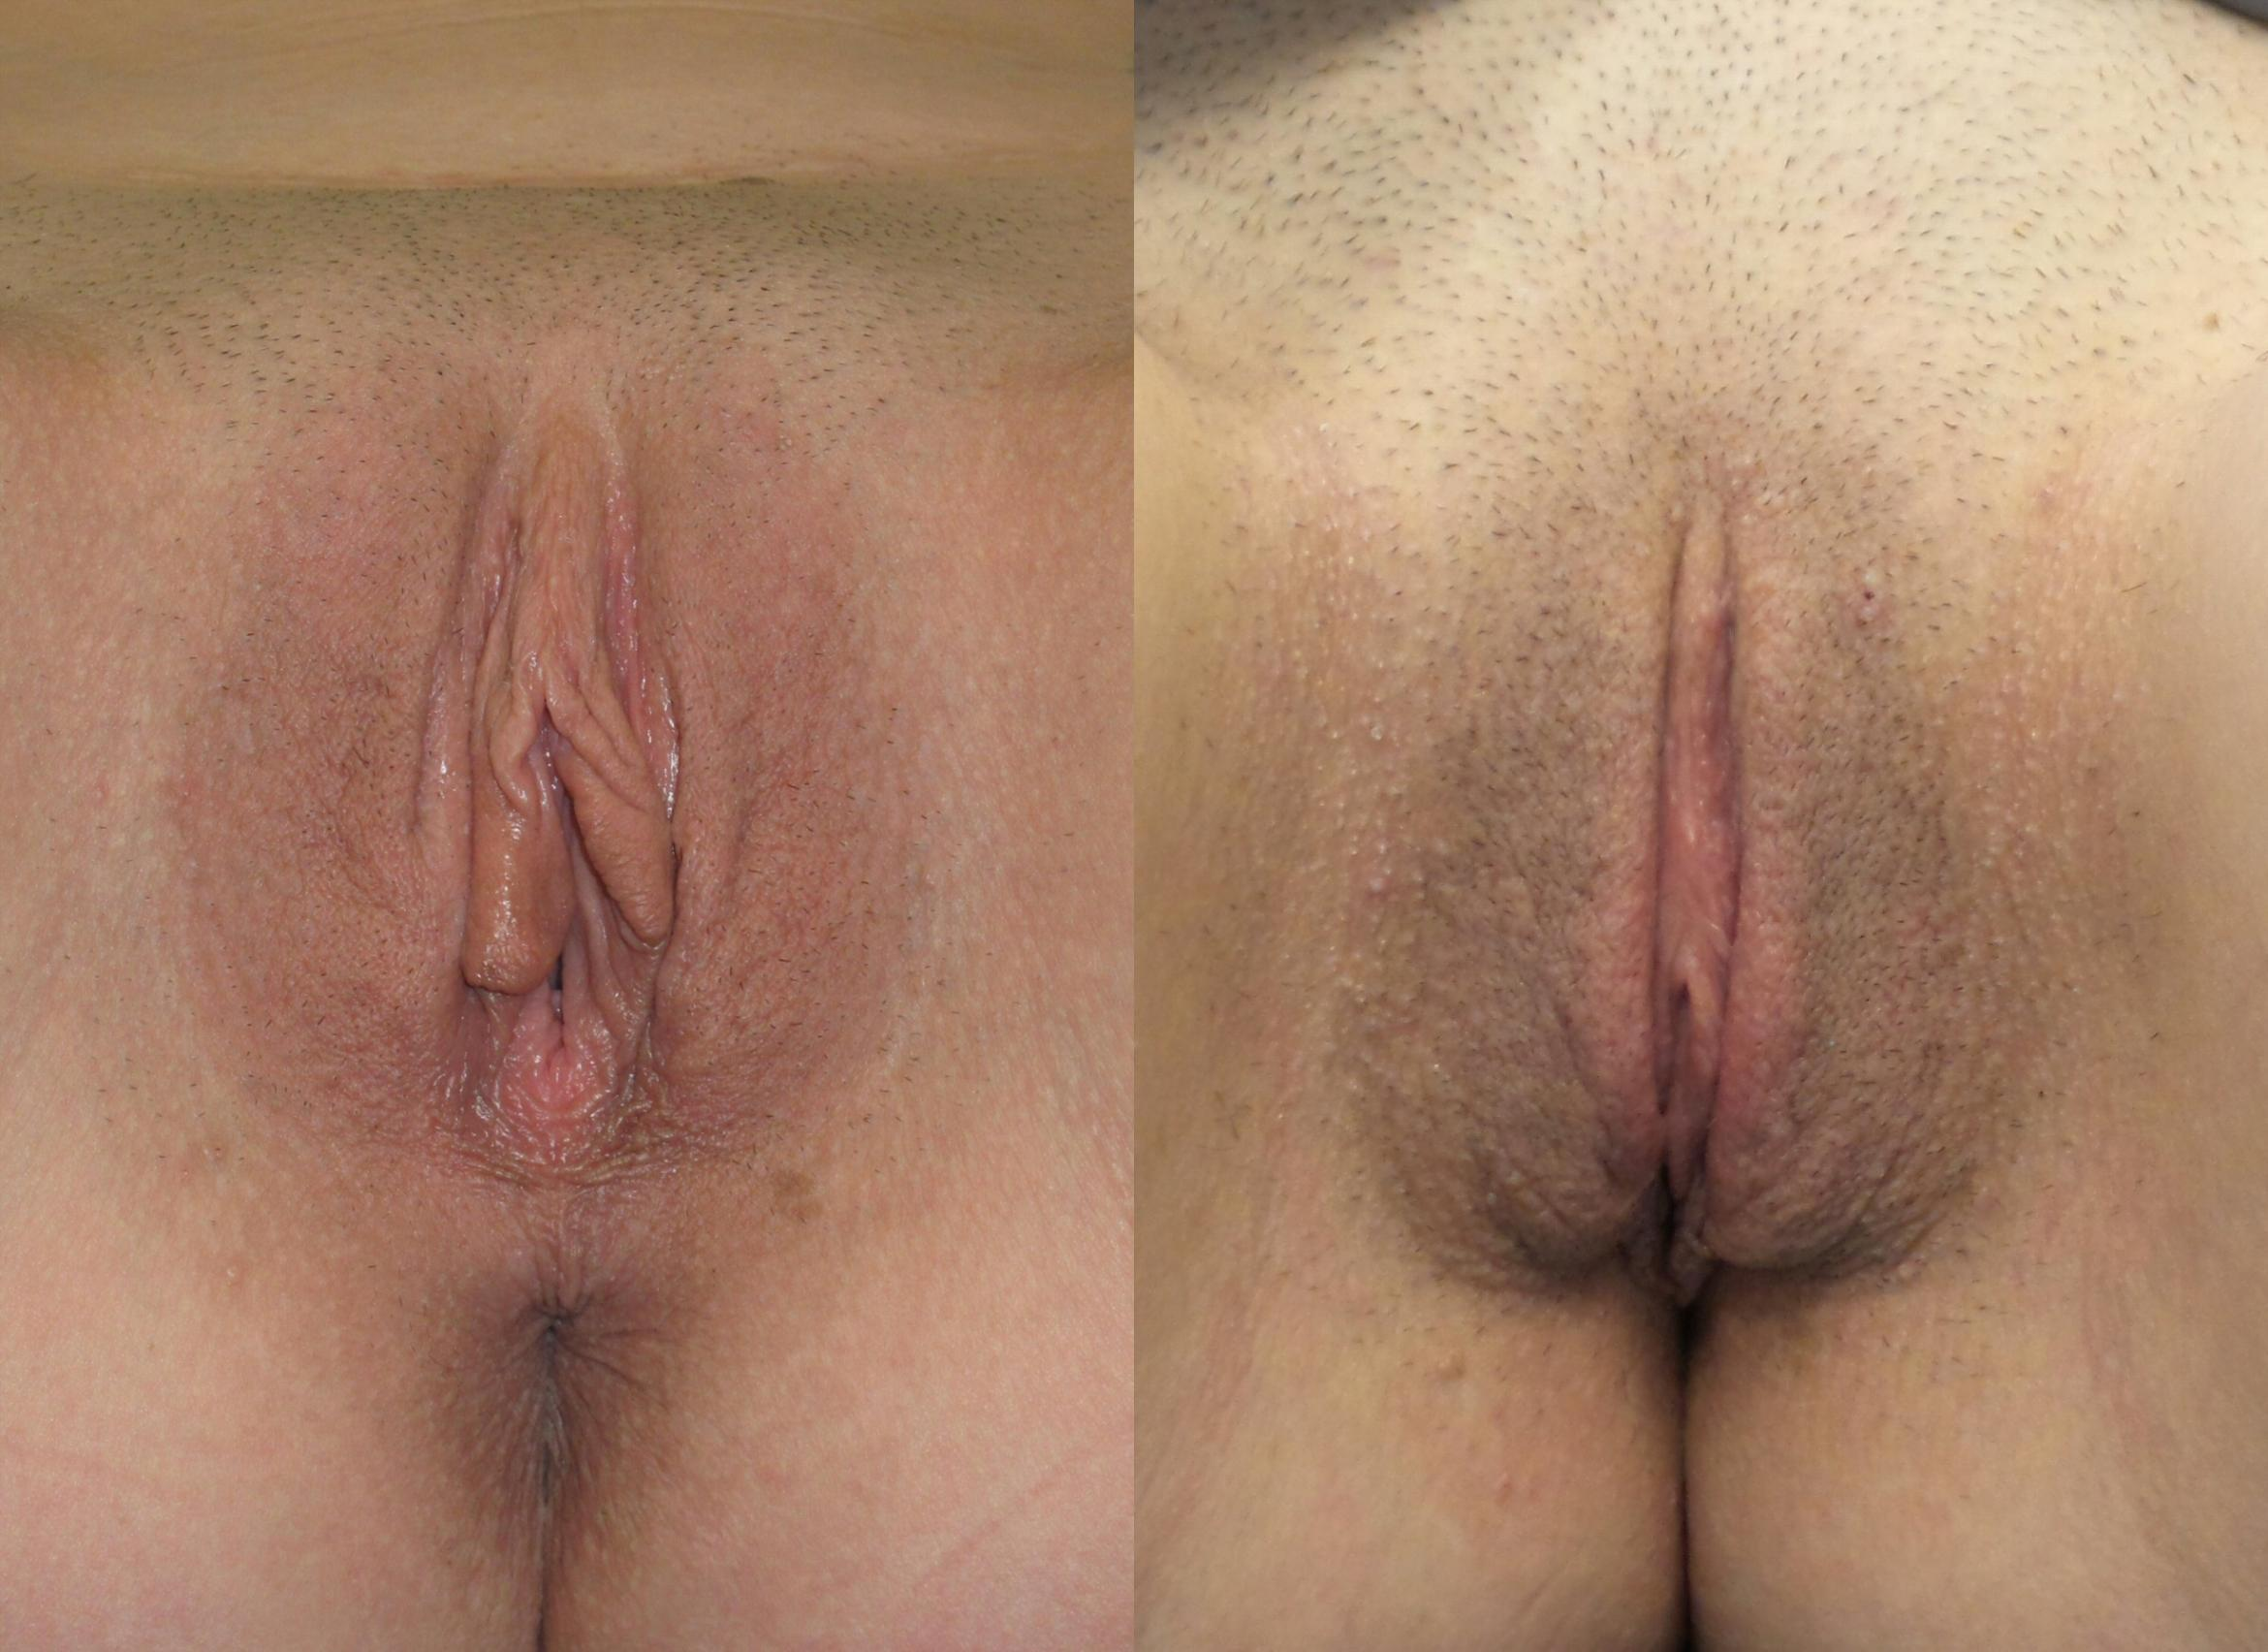 Labiaplasty frontal view before surgery